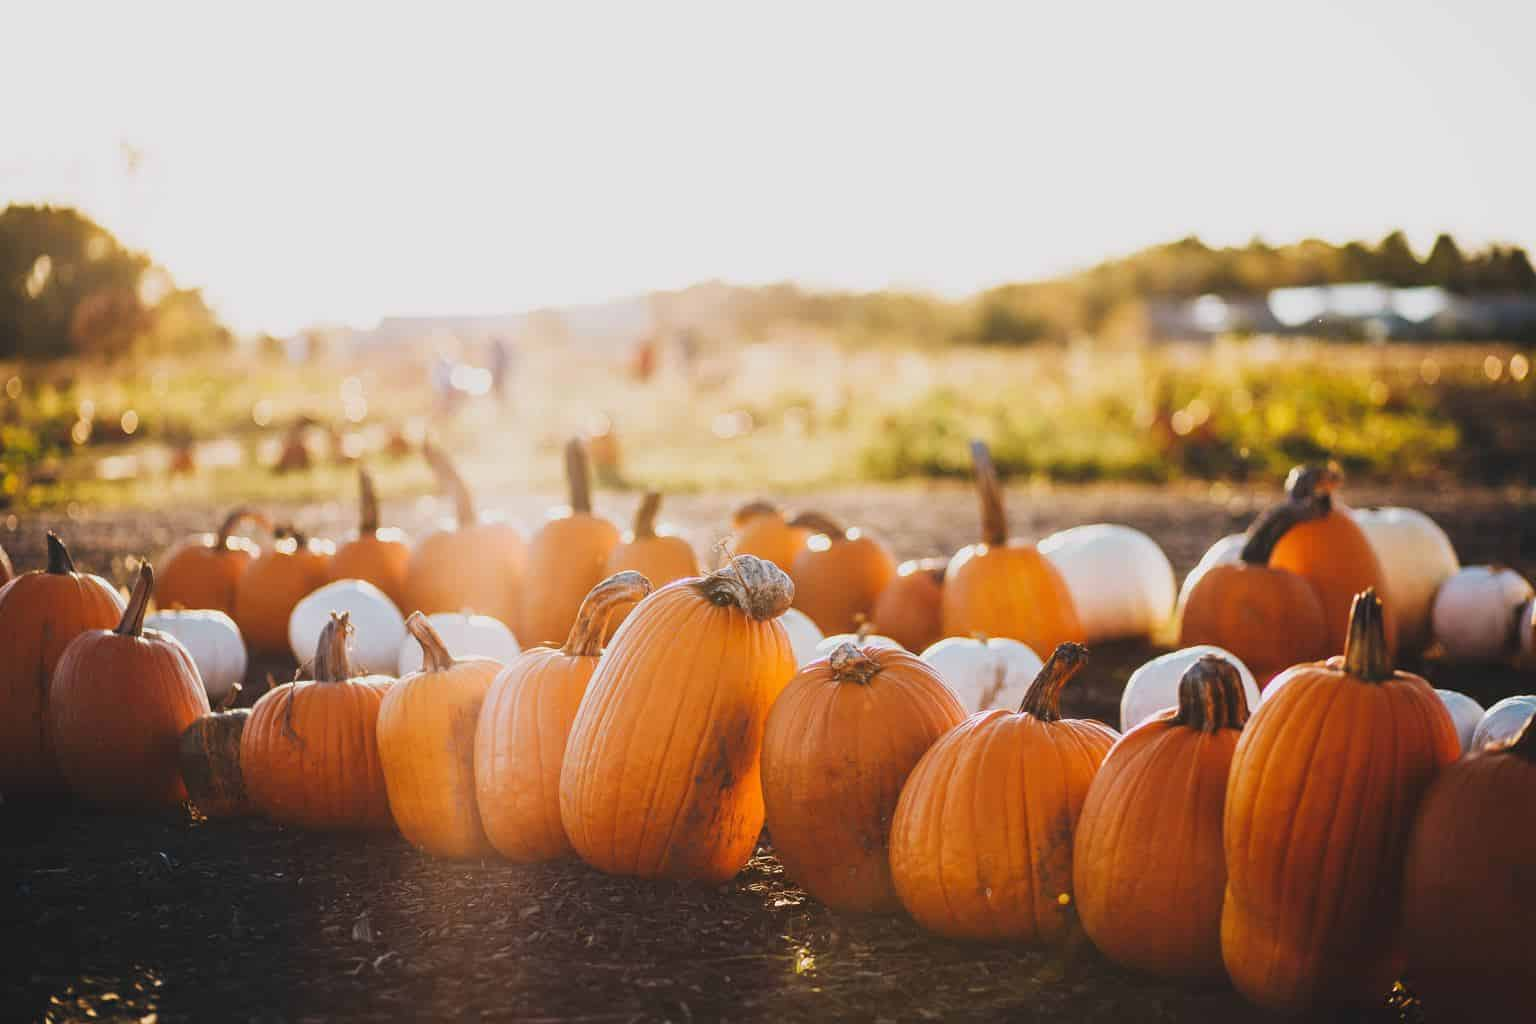 Are pumpkin seeds a natural dewormer for chickens? Let's talk about the truth!